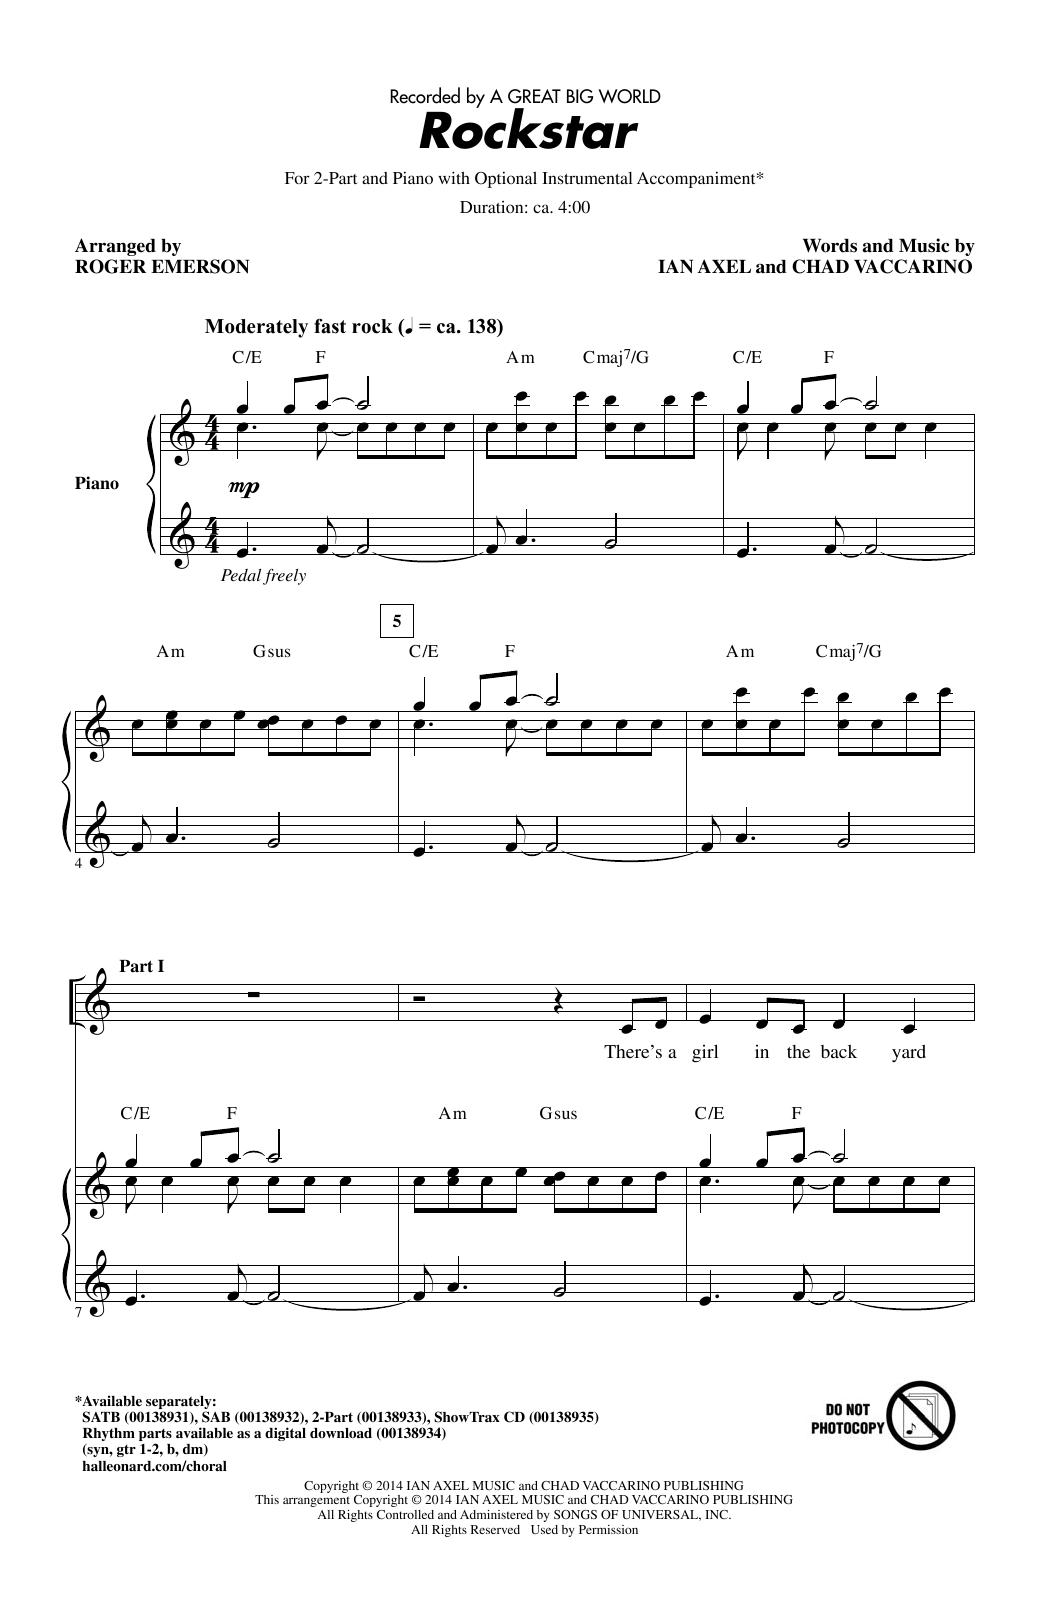 Download A Great Big World 'Rockstar (arr. Roger Emerson)' Digital Sheet Music Notes & Chords and start playing in minutes